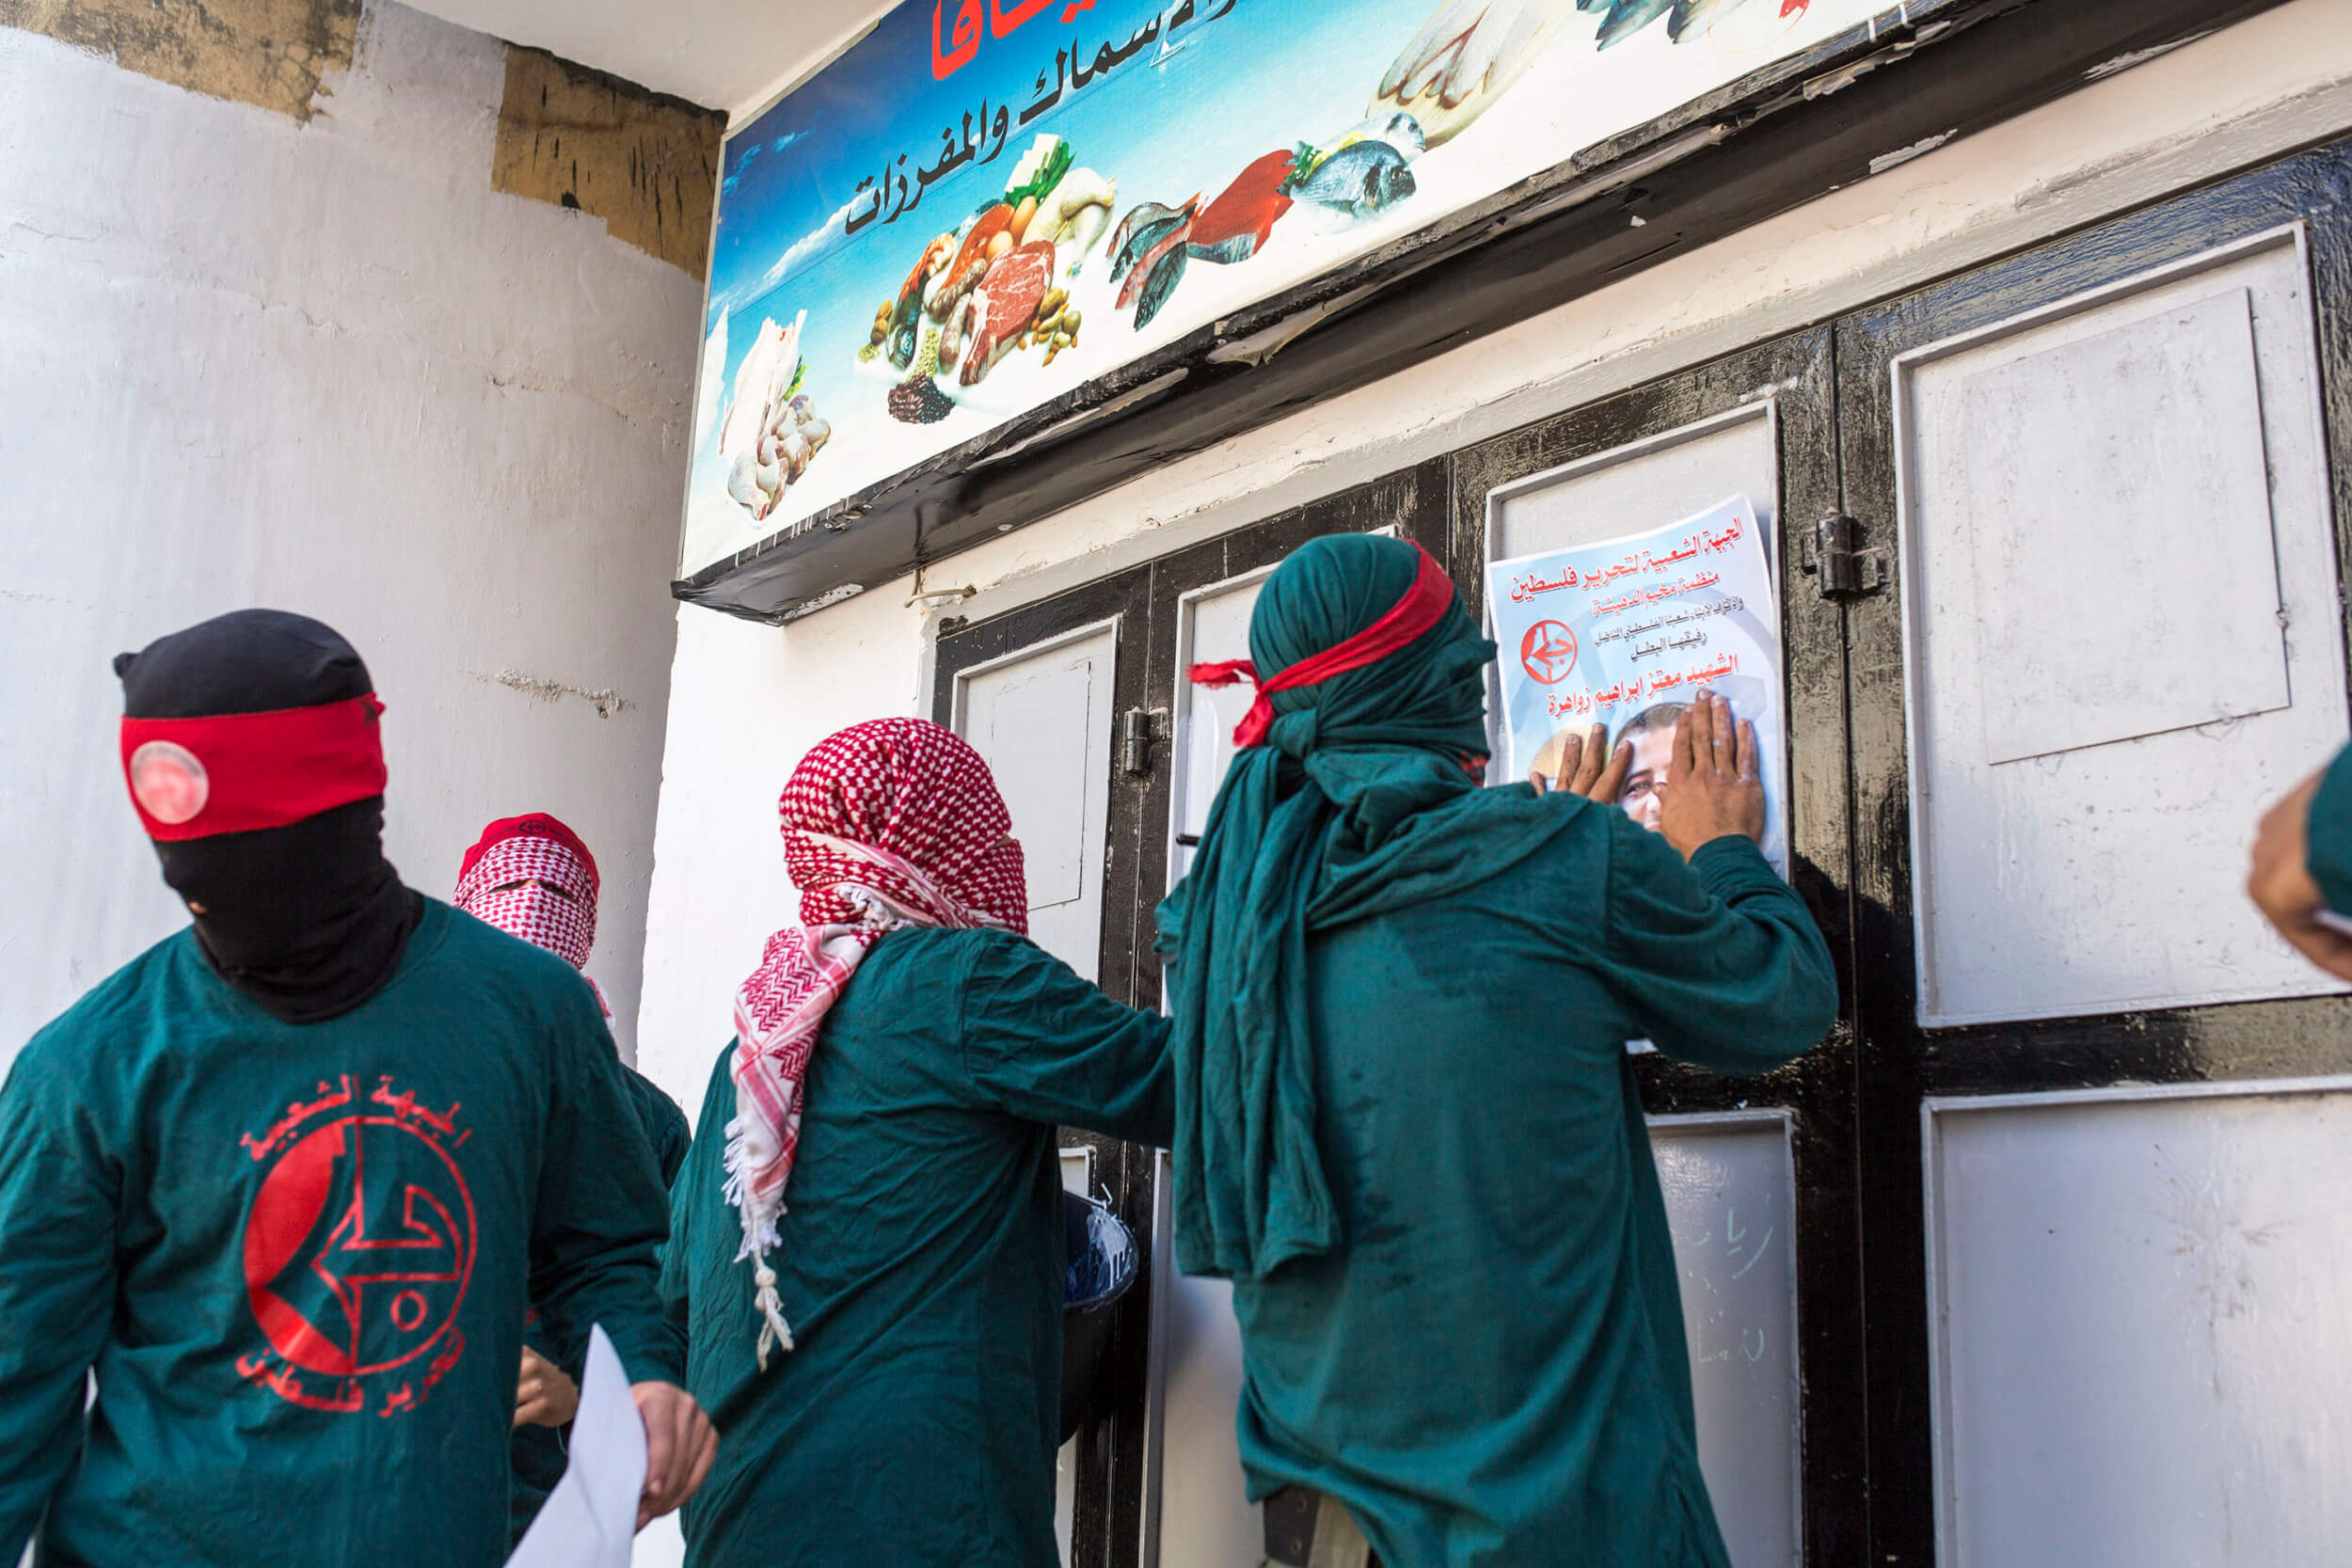 Members of the Popular Front for the Liberation of Palestine glue posters honoring Mutaz Ibrahim Zawahreh, 27, who was killed the day before by the Israeli army. PFLP is very popular in Deheishe refugee camp. (Photo: Anne Paq)